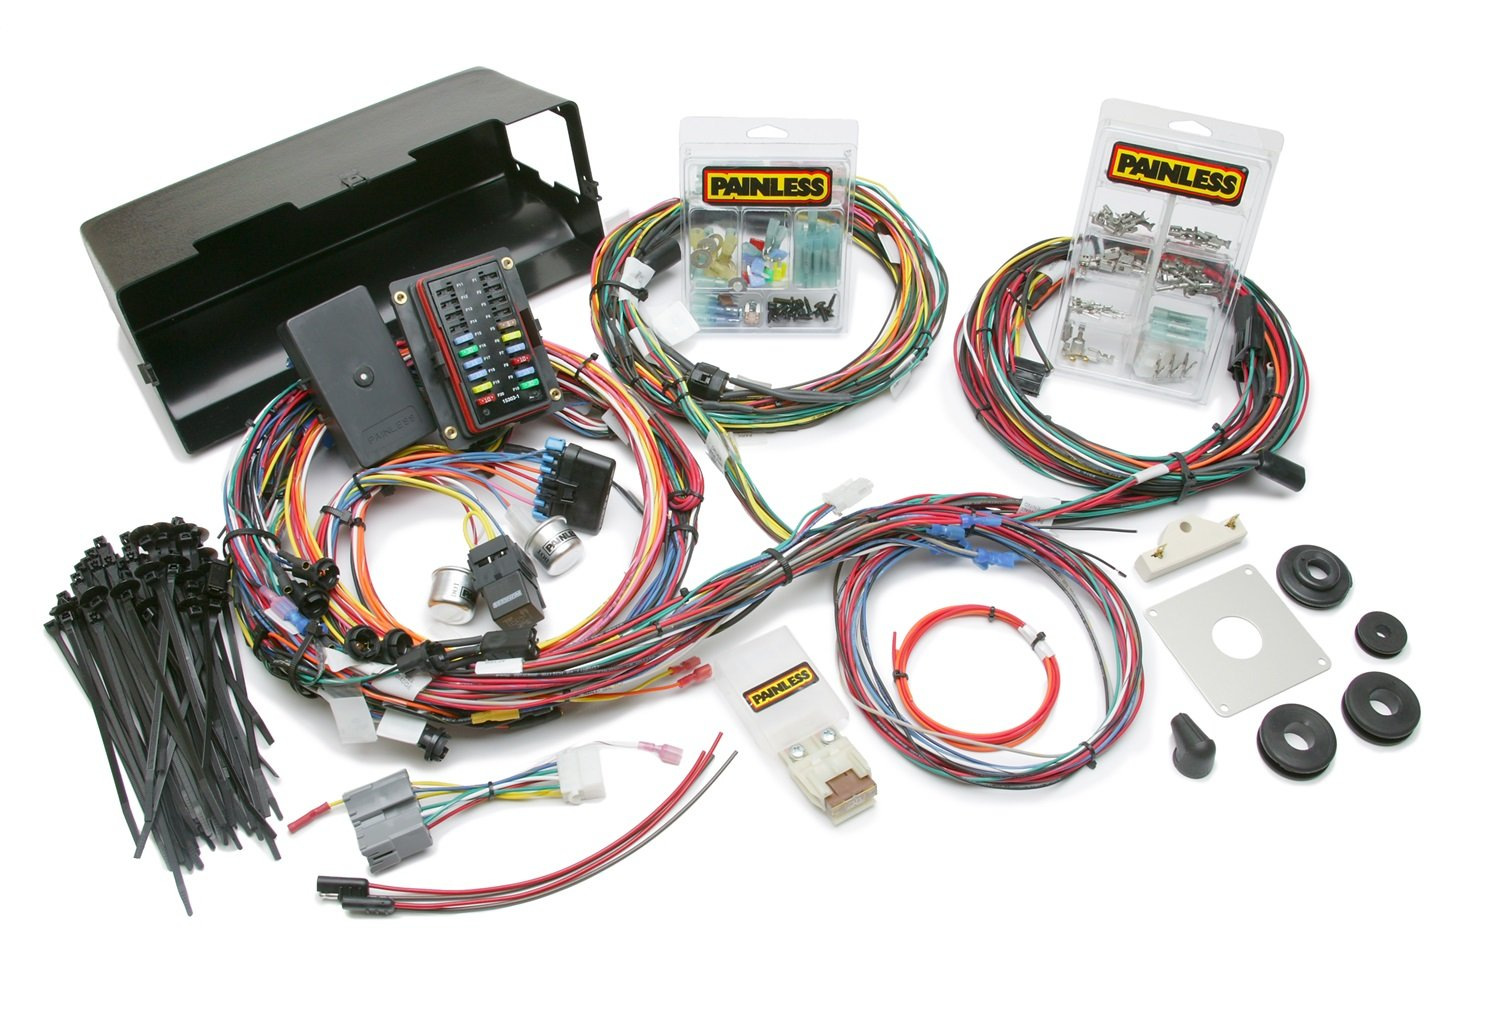 10113 painless fuse box wiring library 10113 painless fuse box